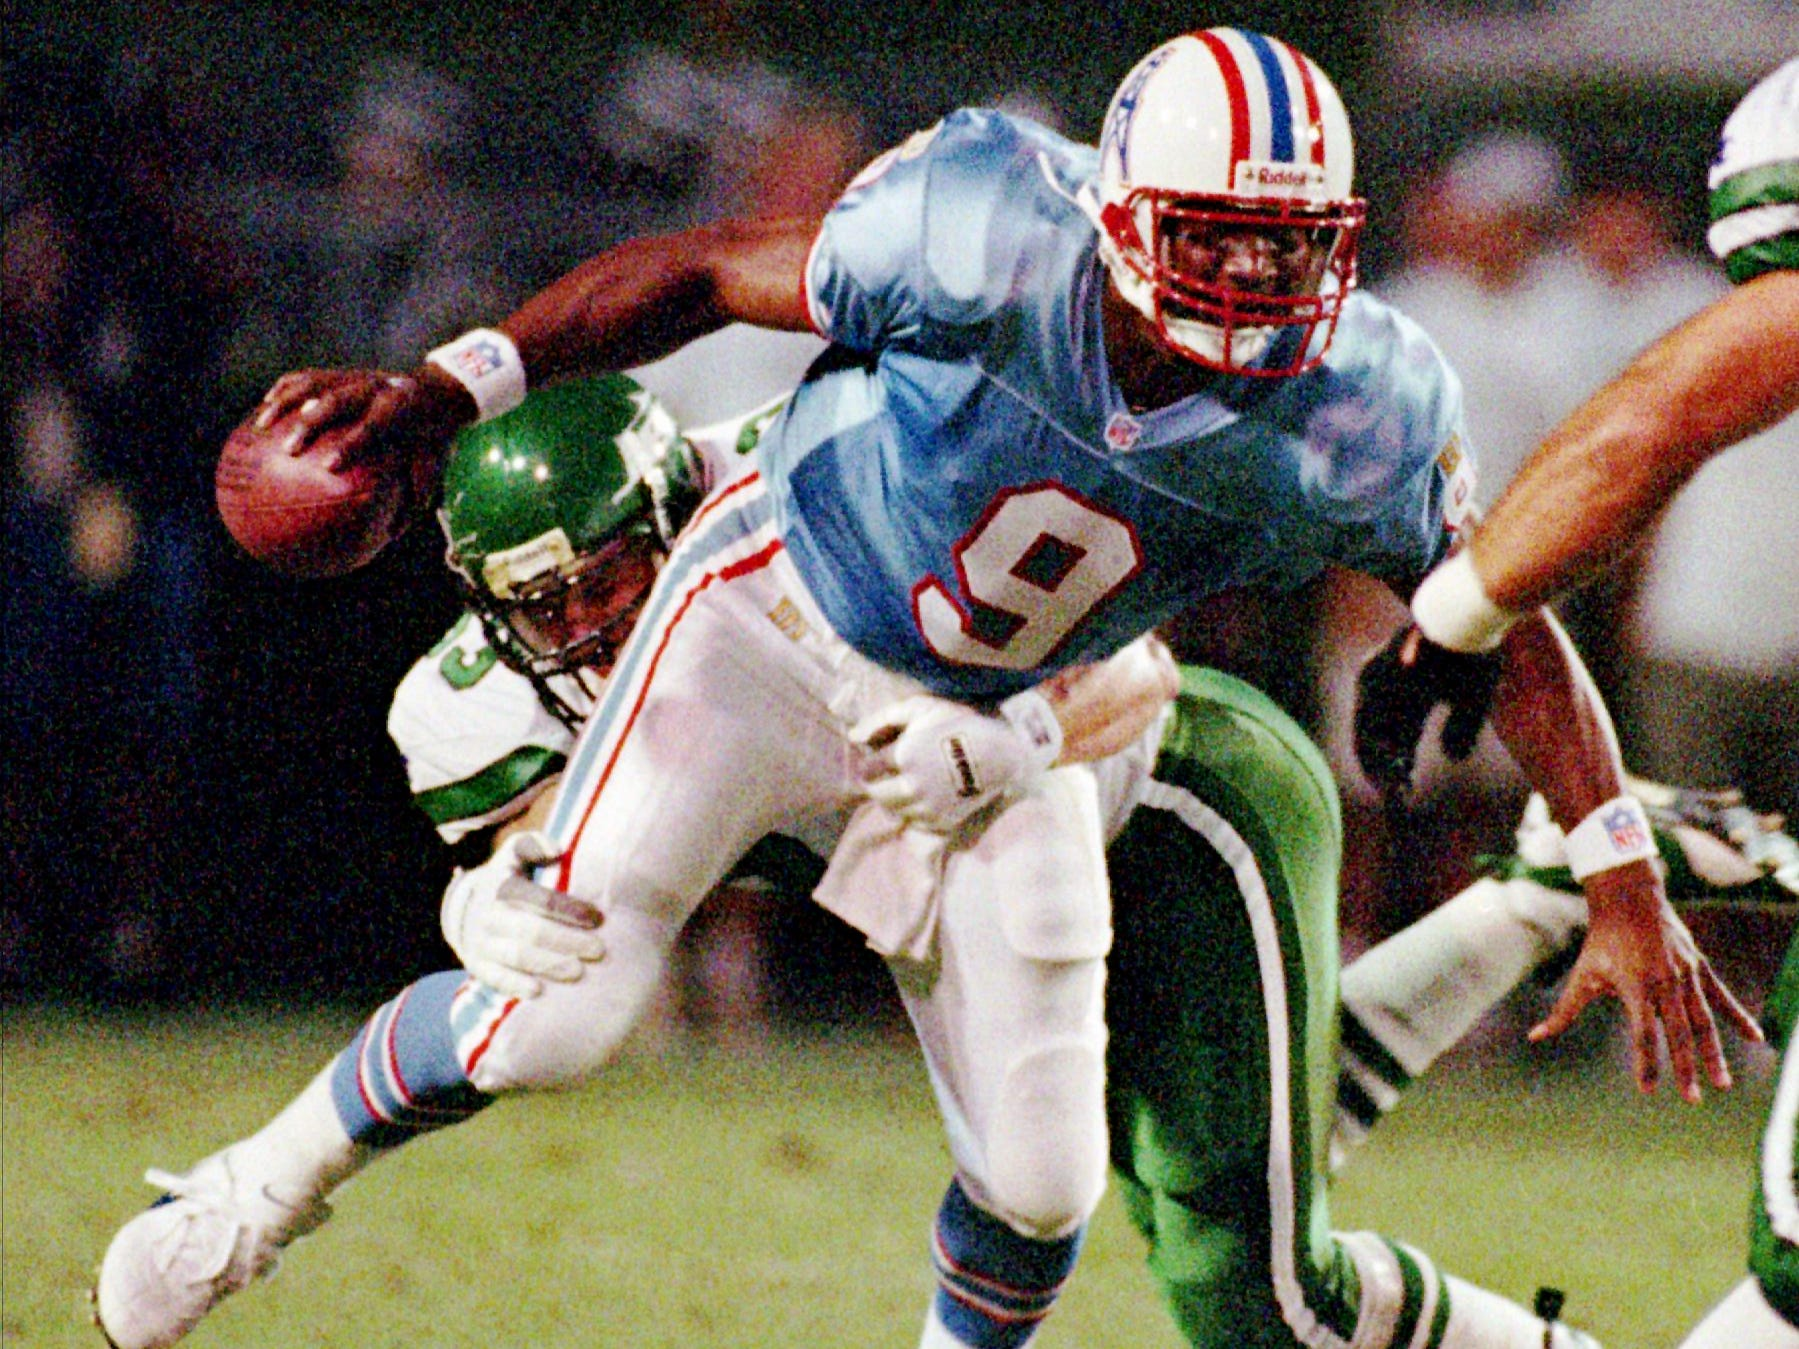 Houston Oilers quarterback Steve McNair attempts to breaks free from a New York Jets defender during a pre-season game in Jackson, Miss. Aug. 3, 1996.